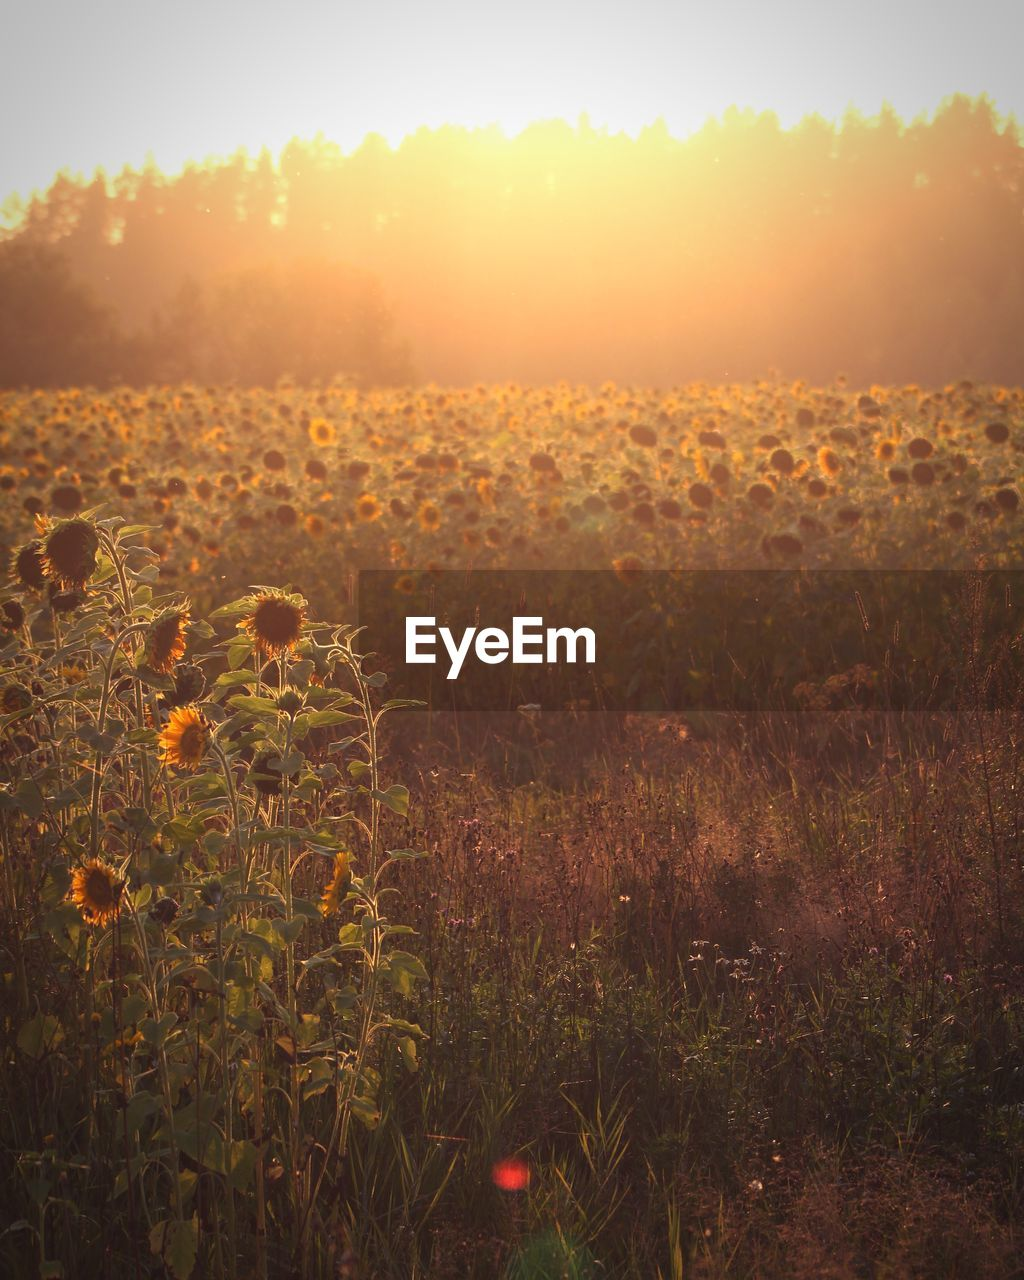 plant, growth, field, beauty in nature, land, tranquility, sunset, sky, nature, tranquil scene, landscape, environment, sun, sunlight, scenics - nature, no people, flower, grass, orange color, flowering plant, outdoors, lens flare